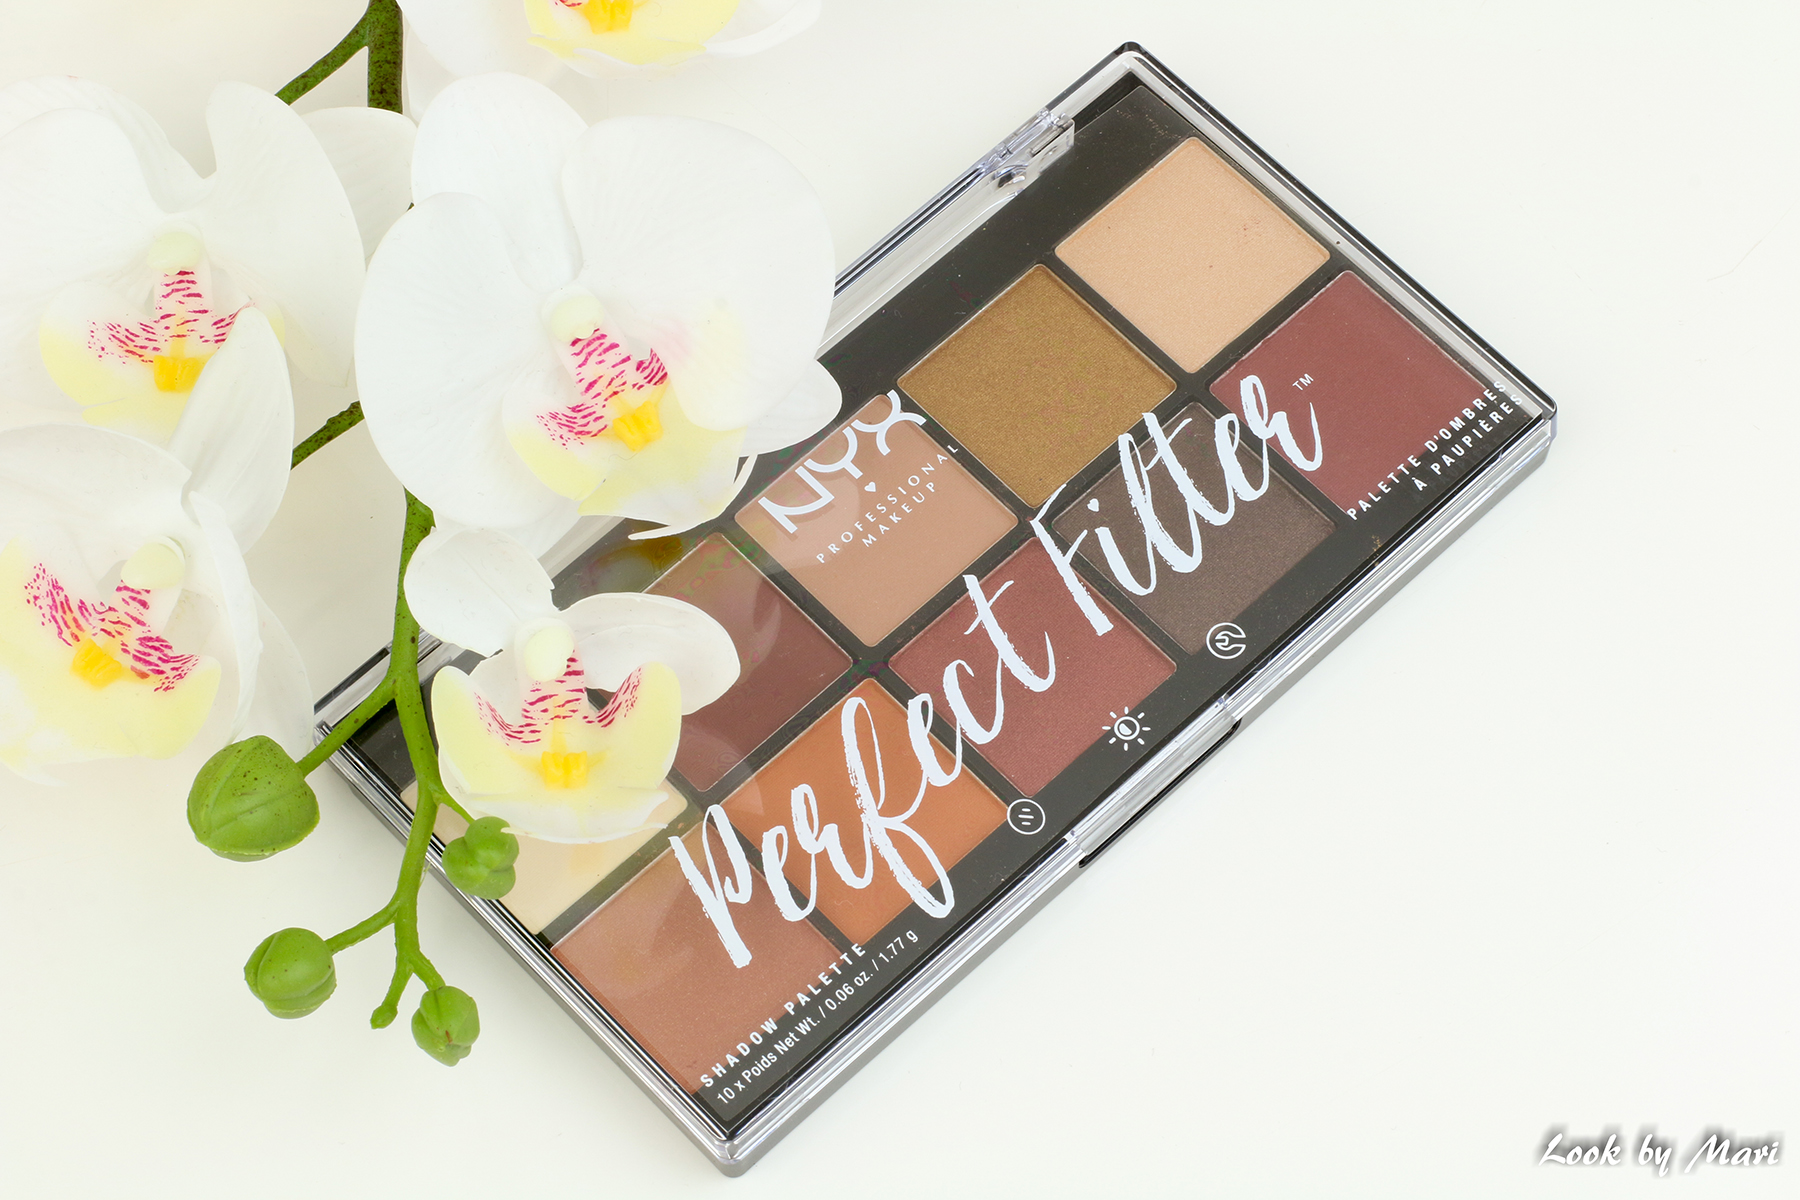 2 nyx perfect filter rustic antique review swatches swatch kokemuksia sävyt